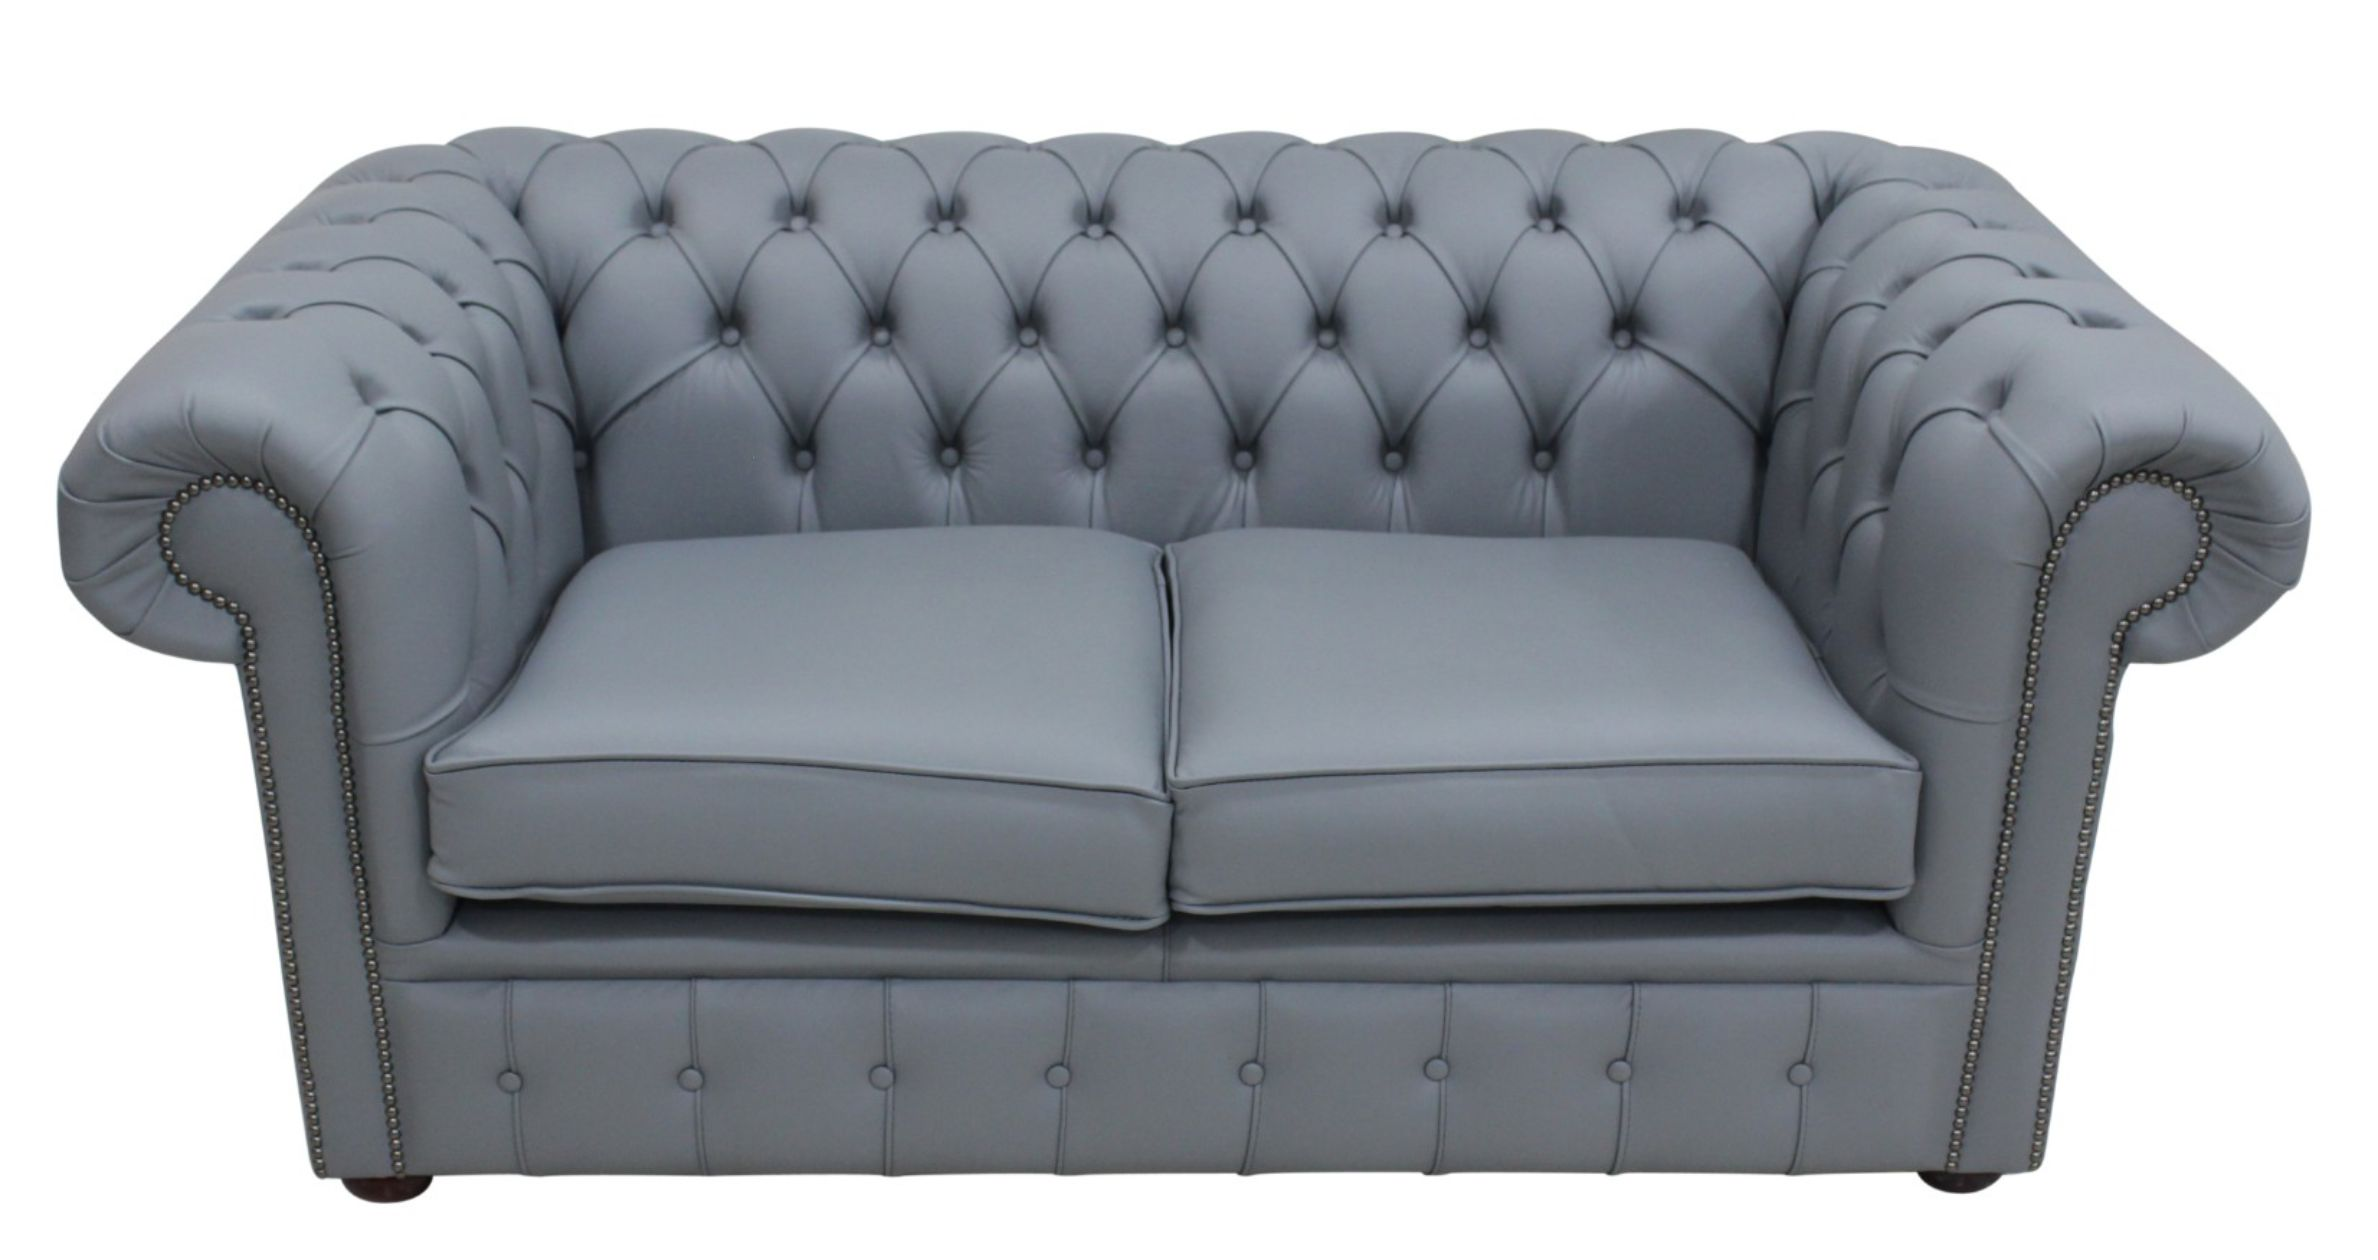 Chesterfield 2 Seater Shelly Piping Grey Leather Sofa